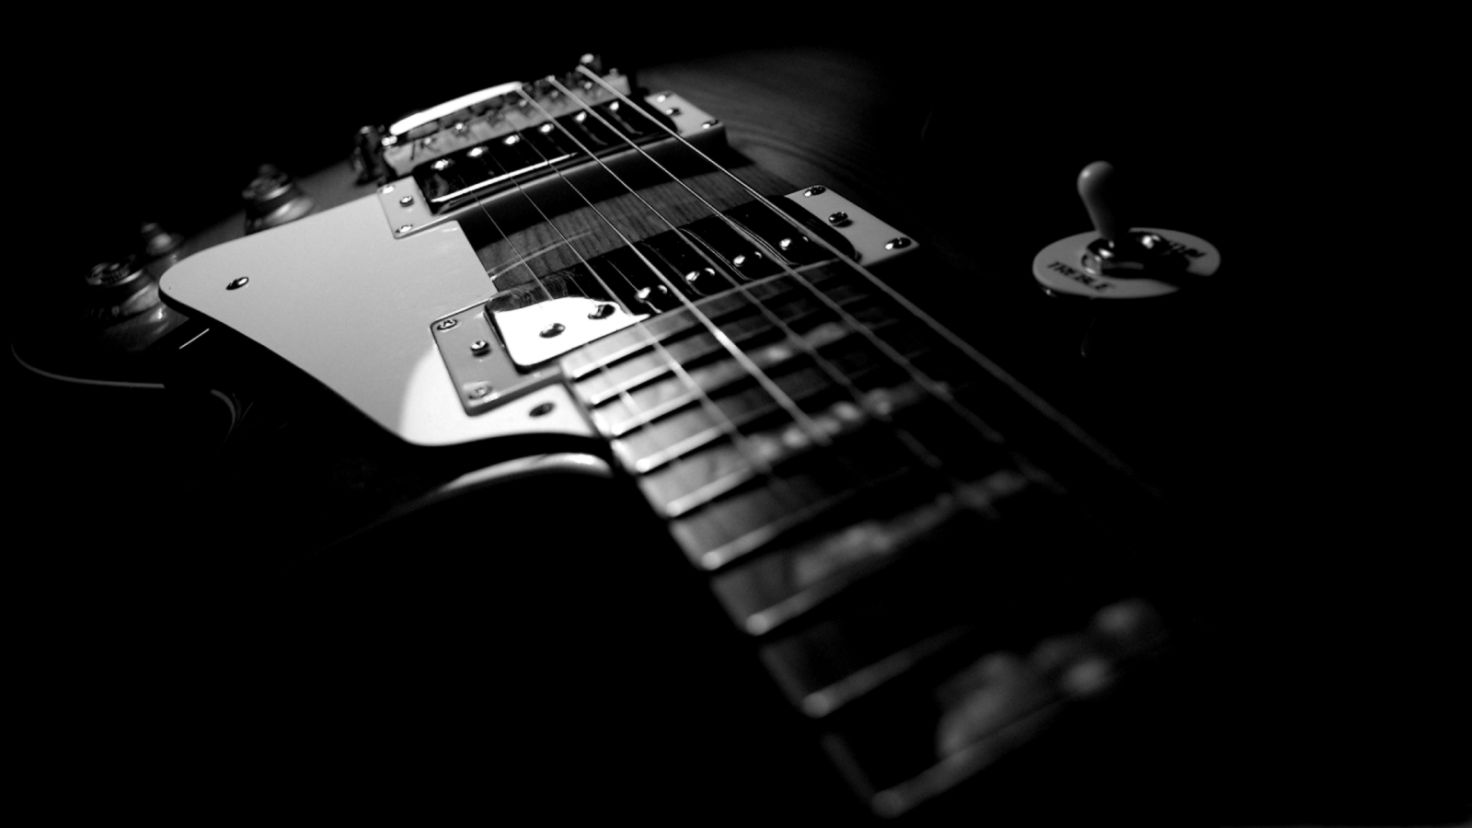 Guitar Music Gibson Monochrome Hd Wallpaper